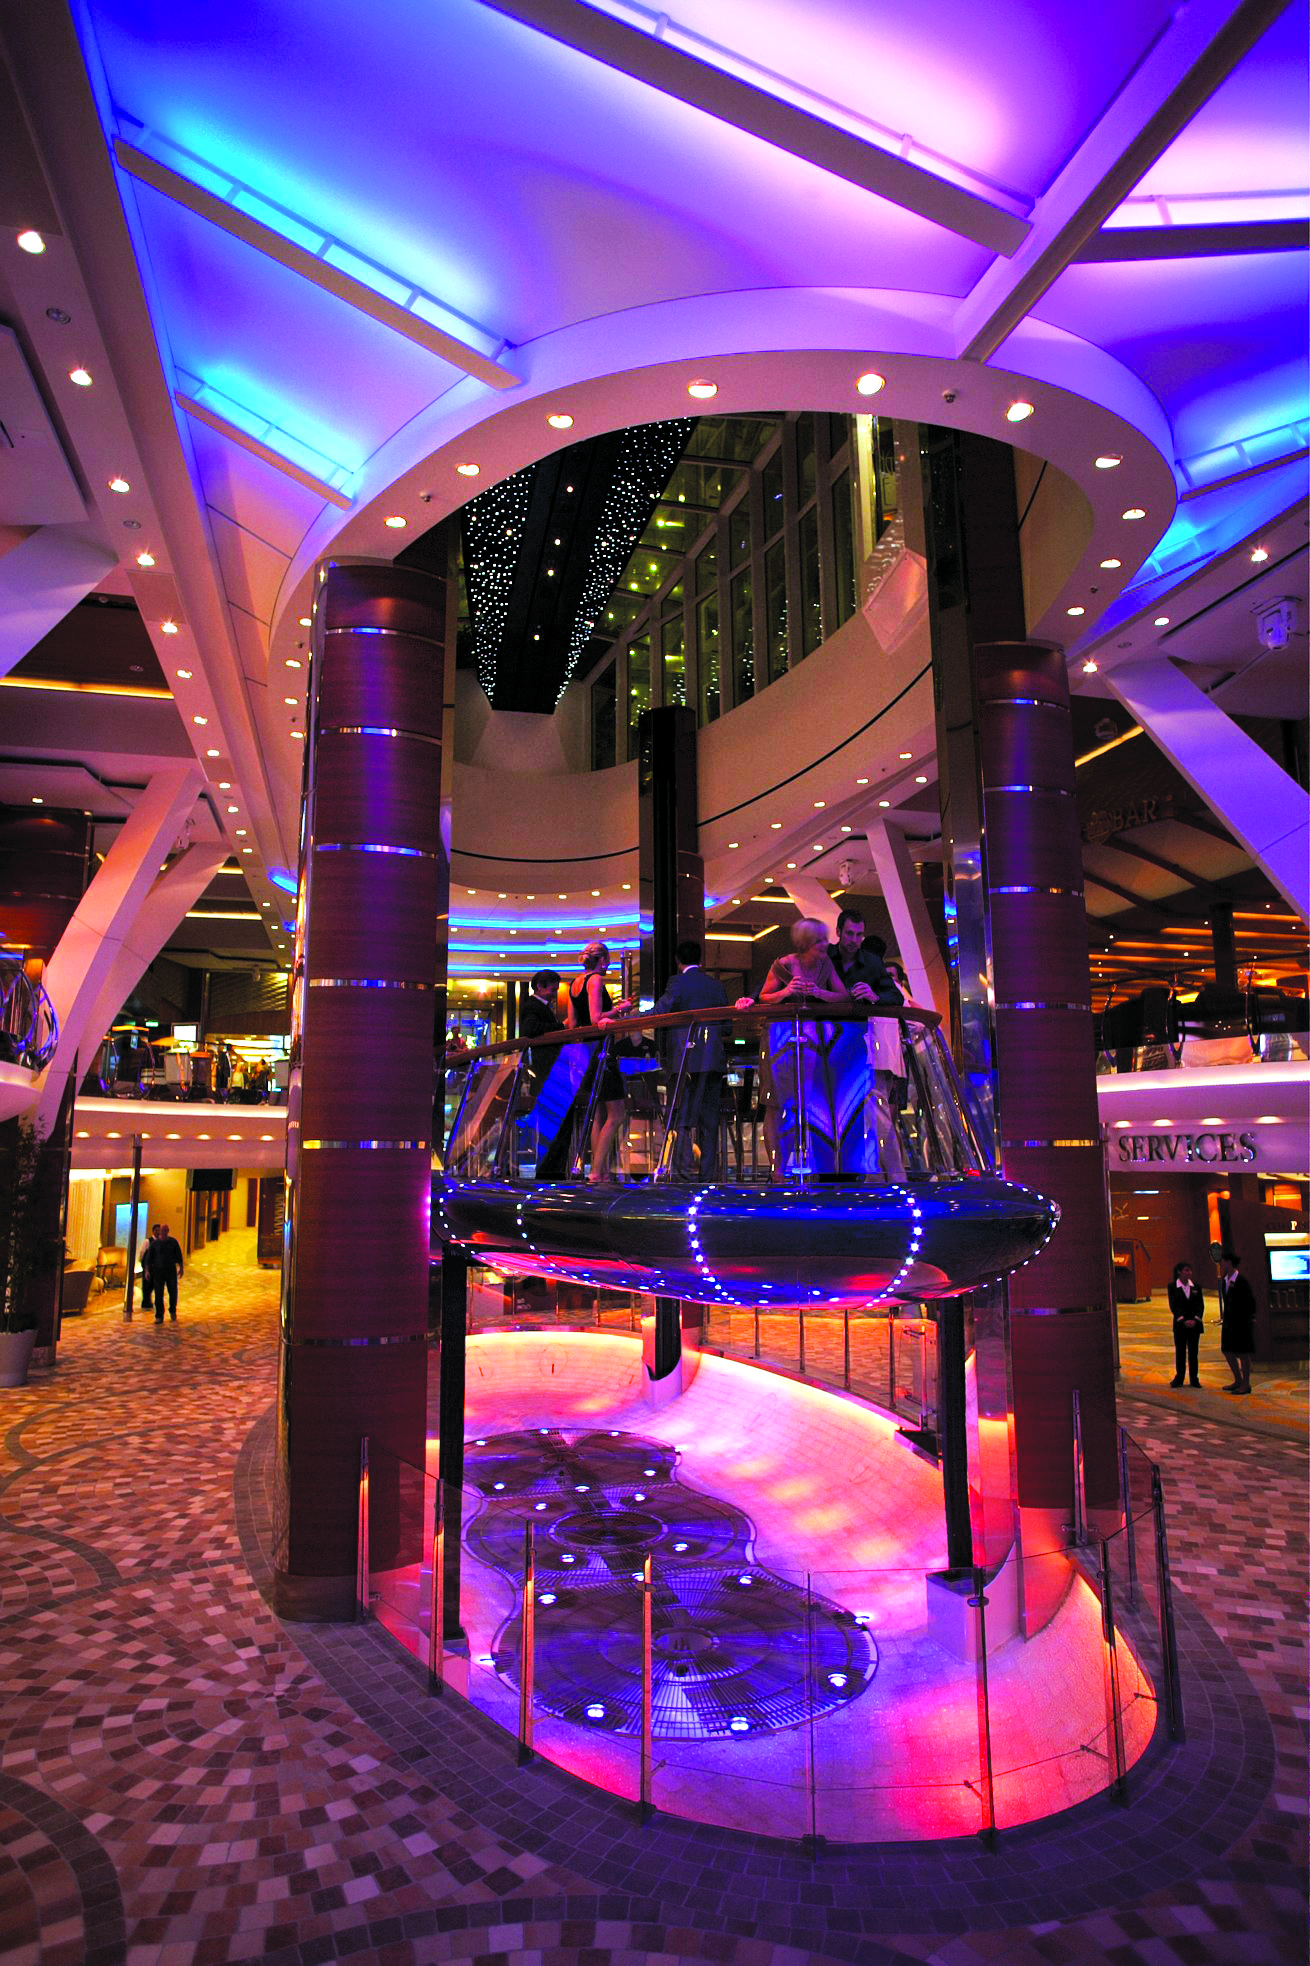 Royal Caribbean International Oasis of the Seas Interior Rising Tide 2.jpg